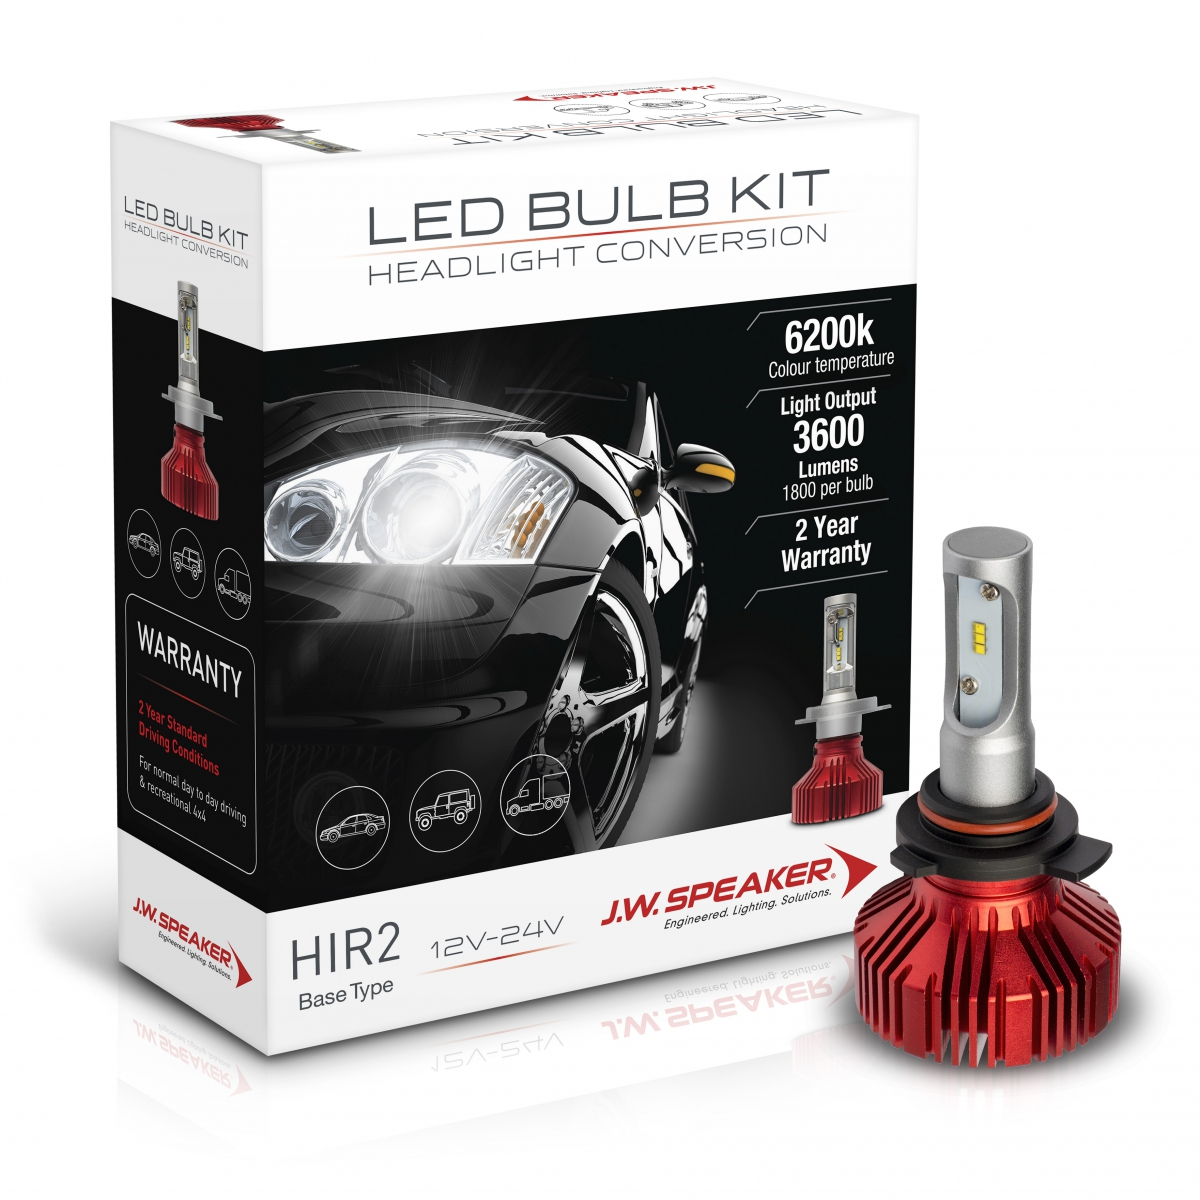 LED Headlight Conversion Kit – Model 3600